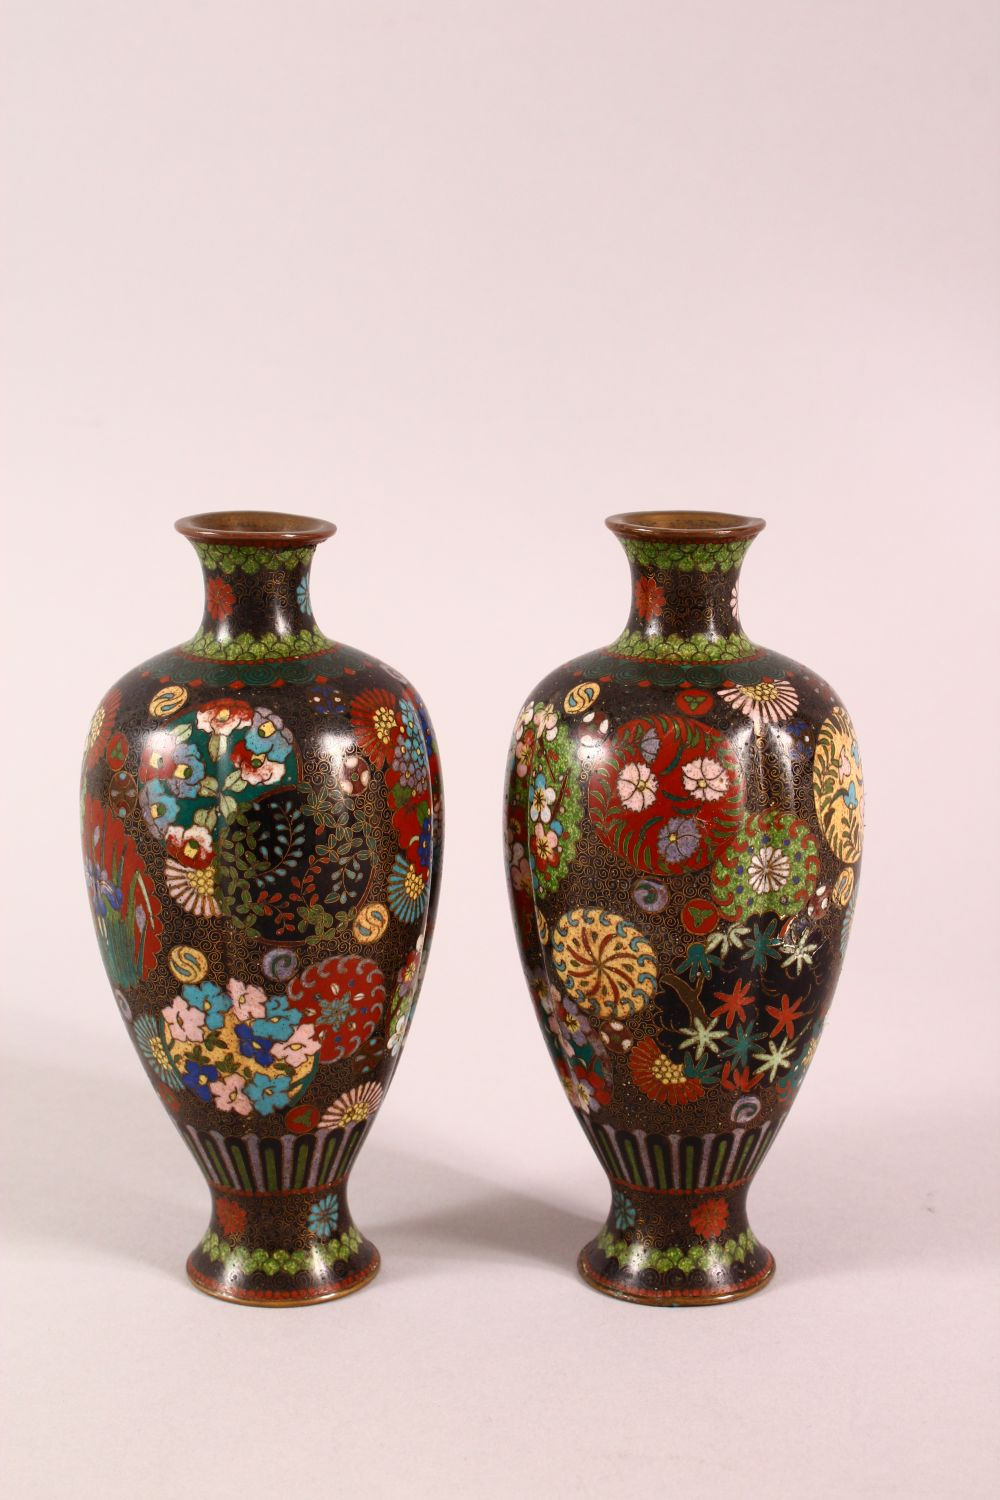 A PAIR OF SMALL CLOISONNE VASES OF RIBBED BALUSTER FORM, decorated with roundels of flowers, 15cm - Image 4 of 6